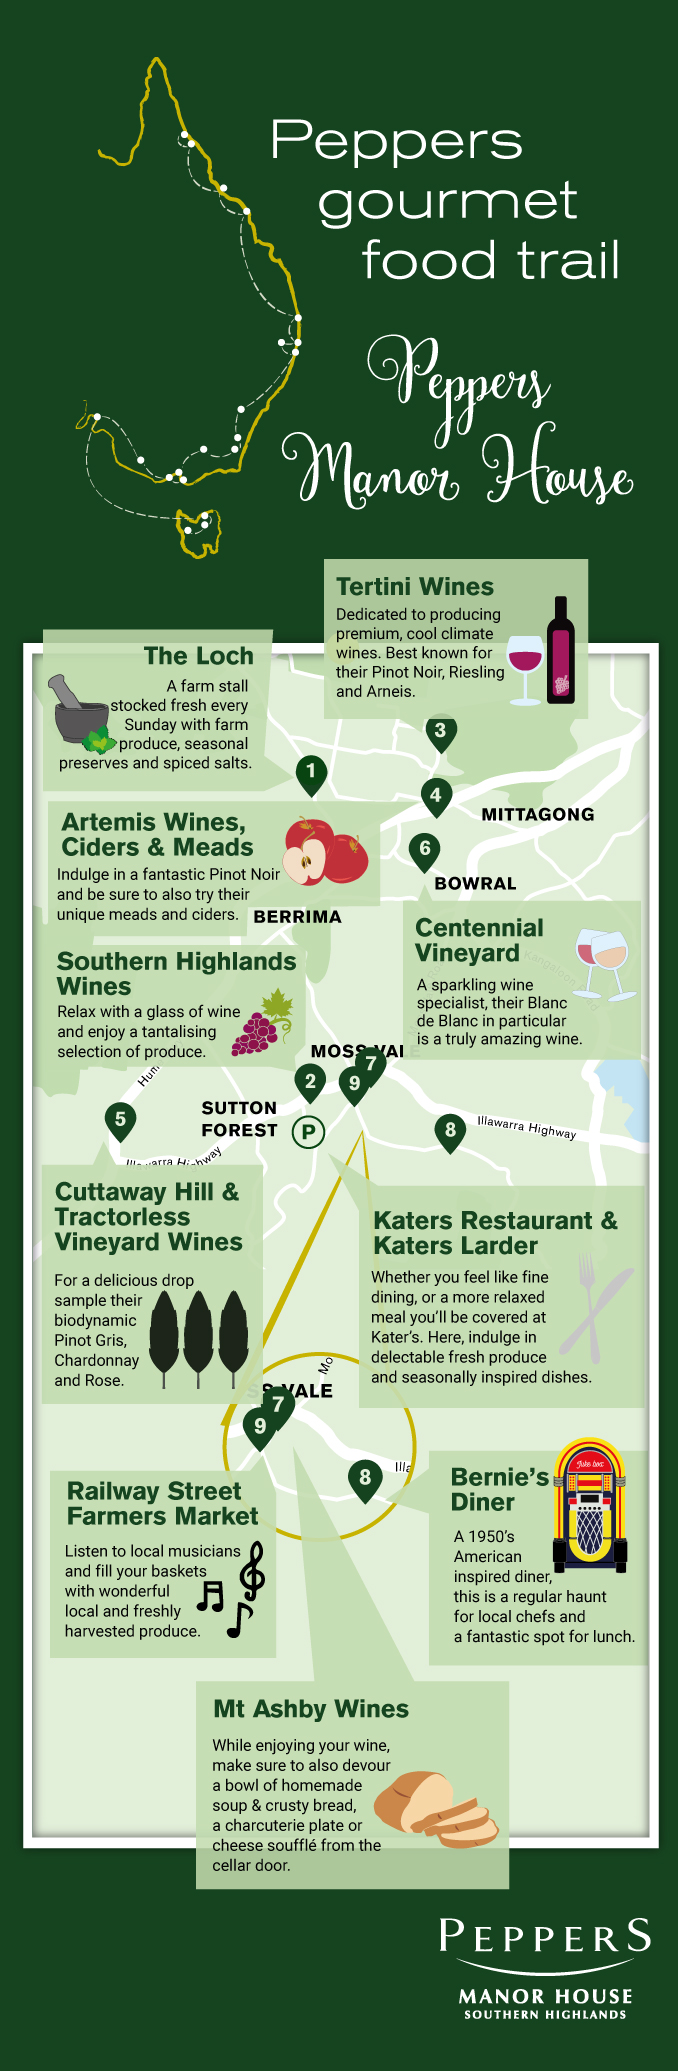 Peppers Experiences | Southern Highlands Food and Wine Trail